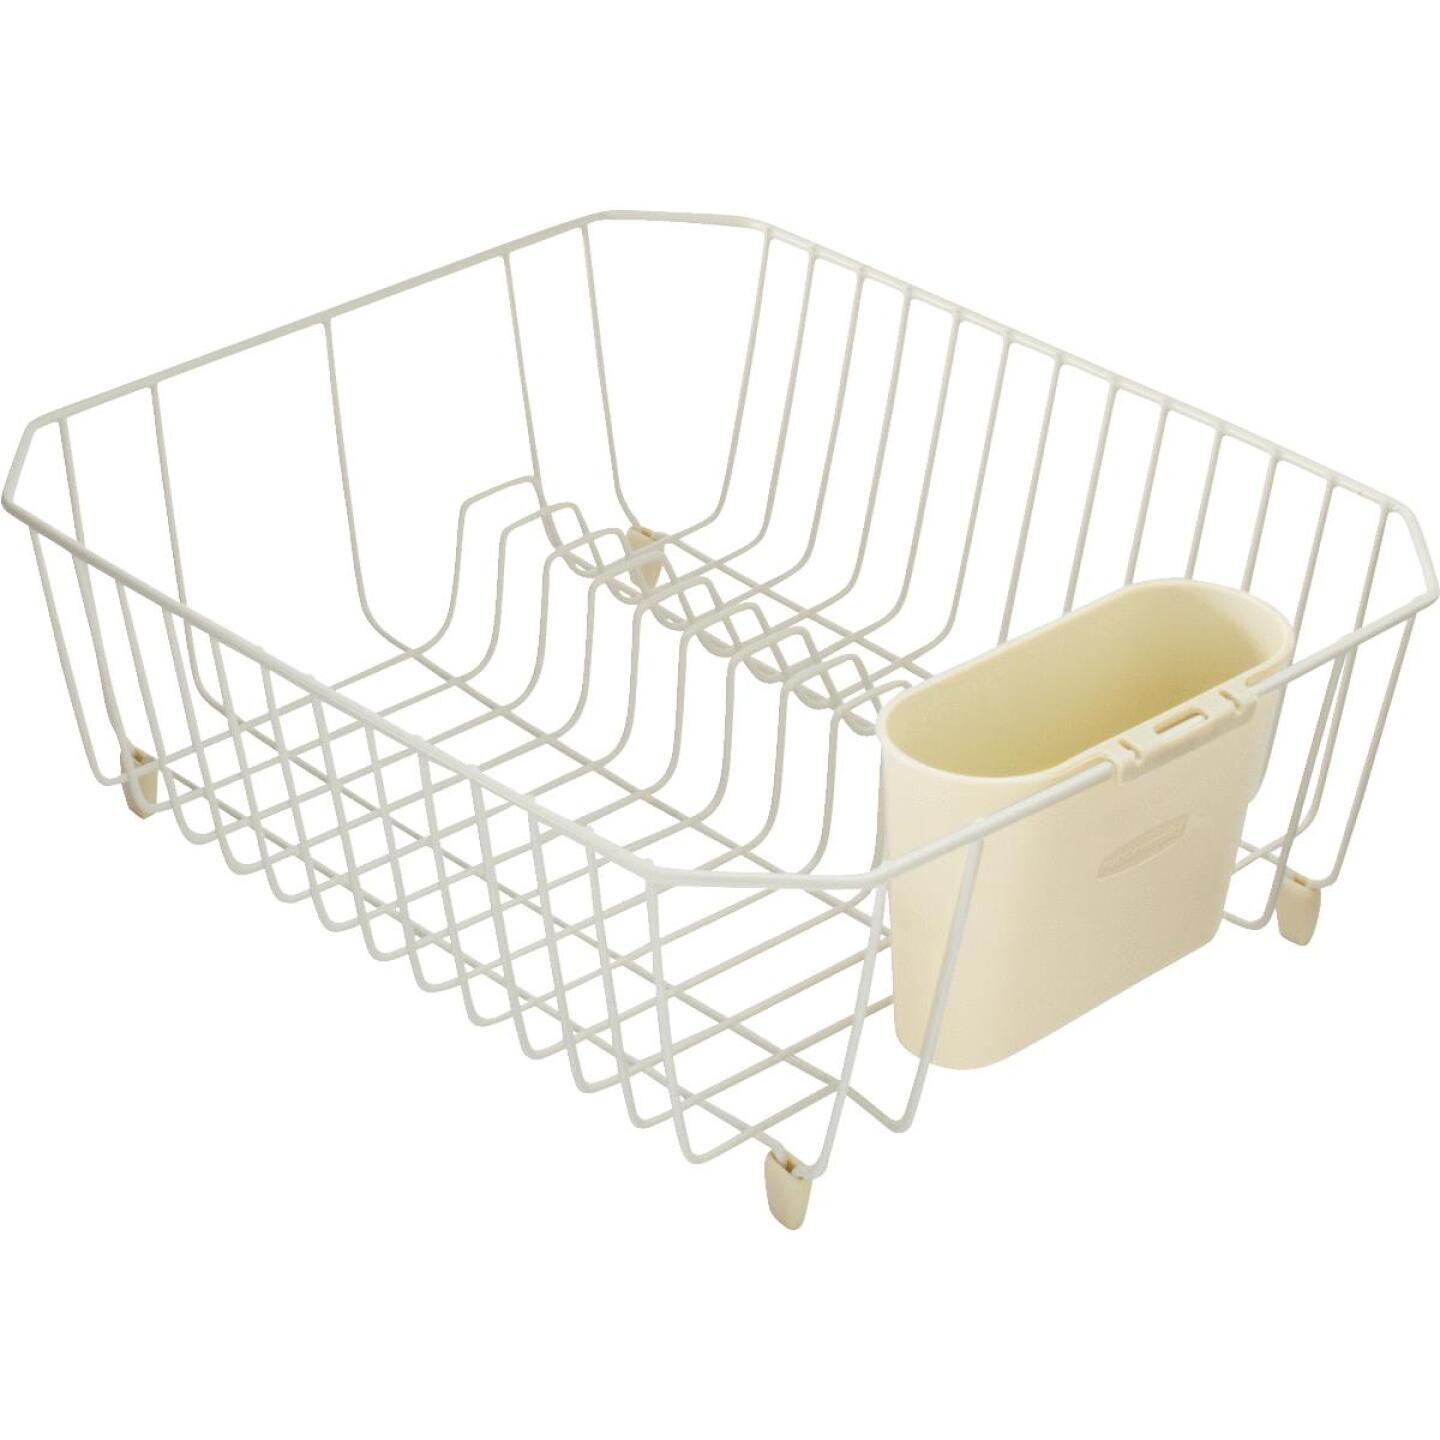 Rubbermaid 12.49 In. x 14.31 In. Bisque Wire Sink Dish Drainer Image 1